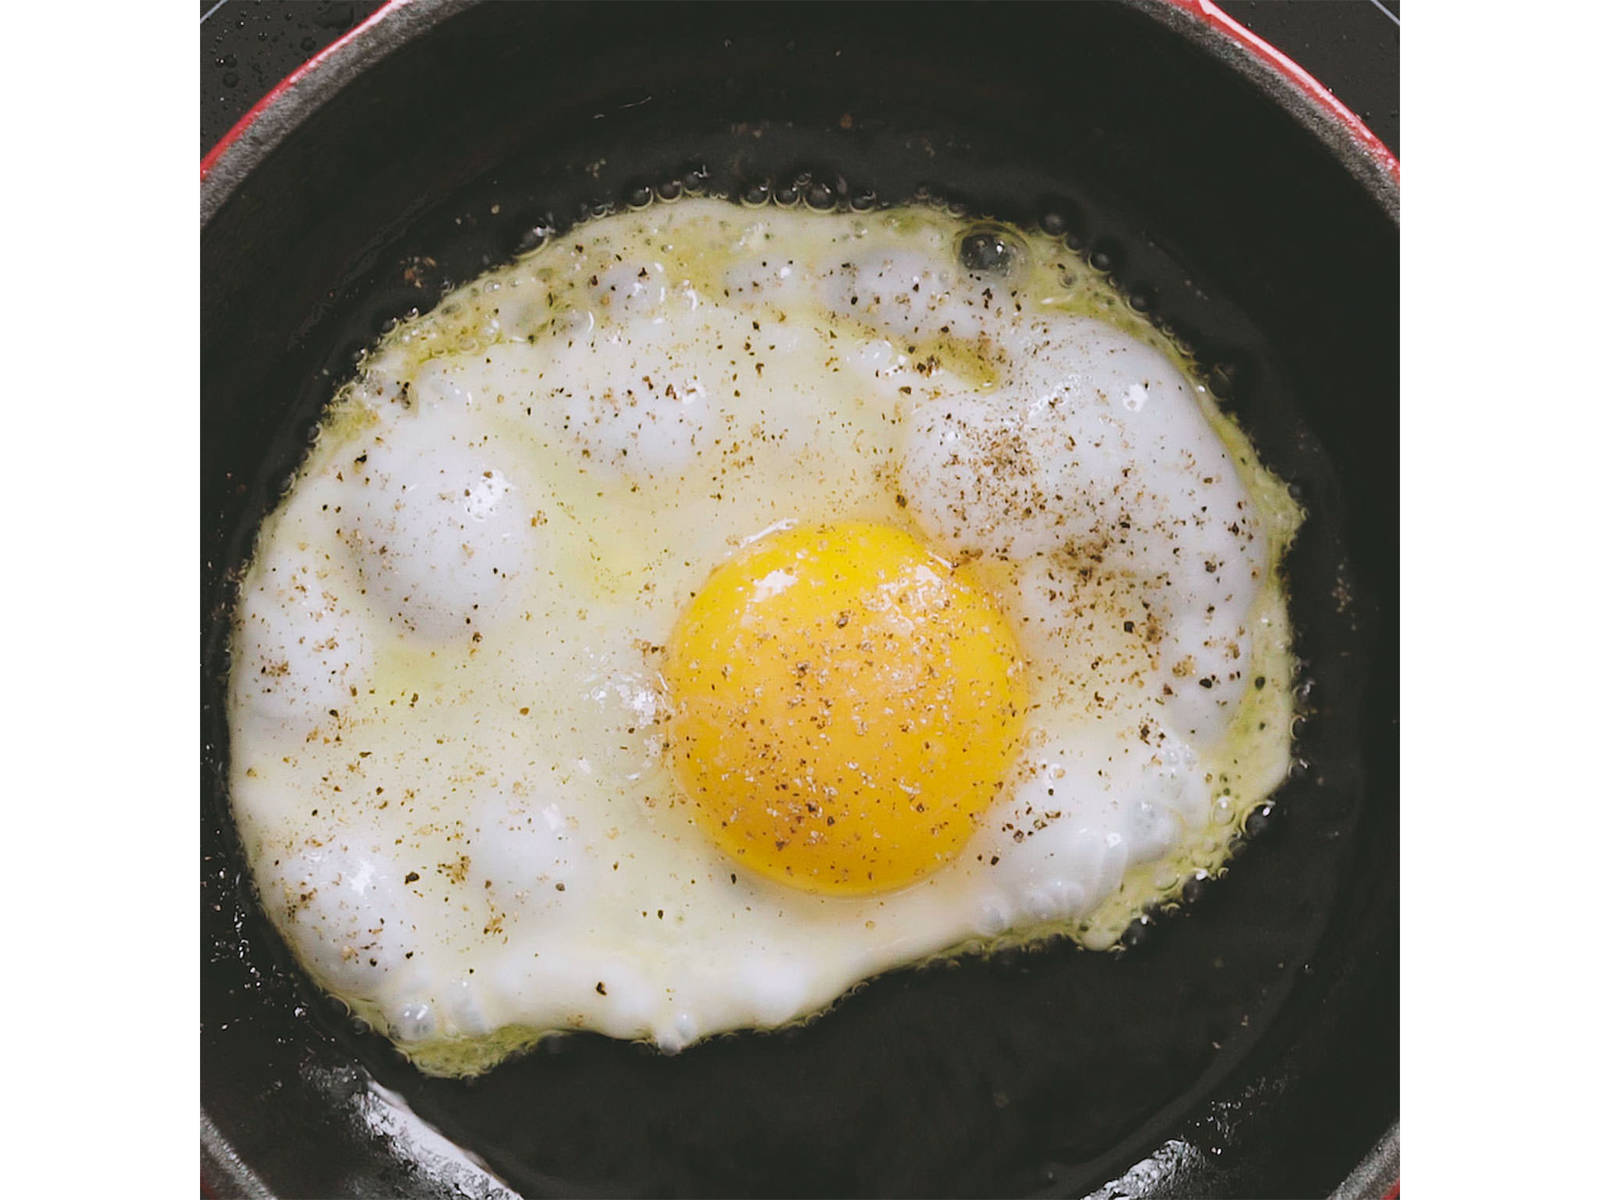 In a frying pan, heat olive oil over medium-high heat and fry egg. Season with salt and pepper.